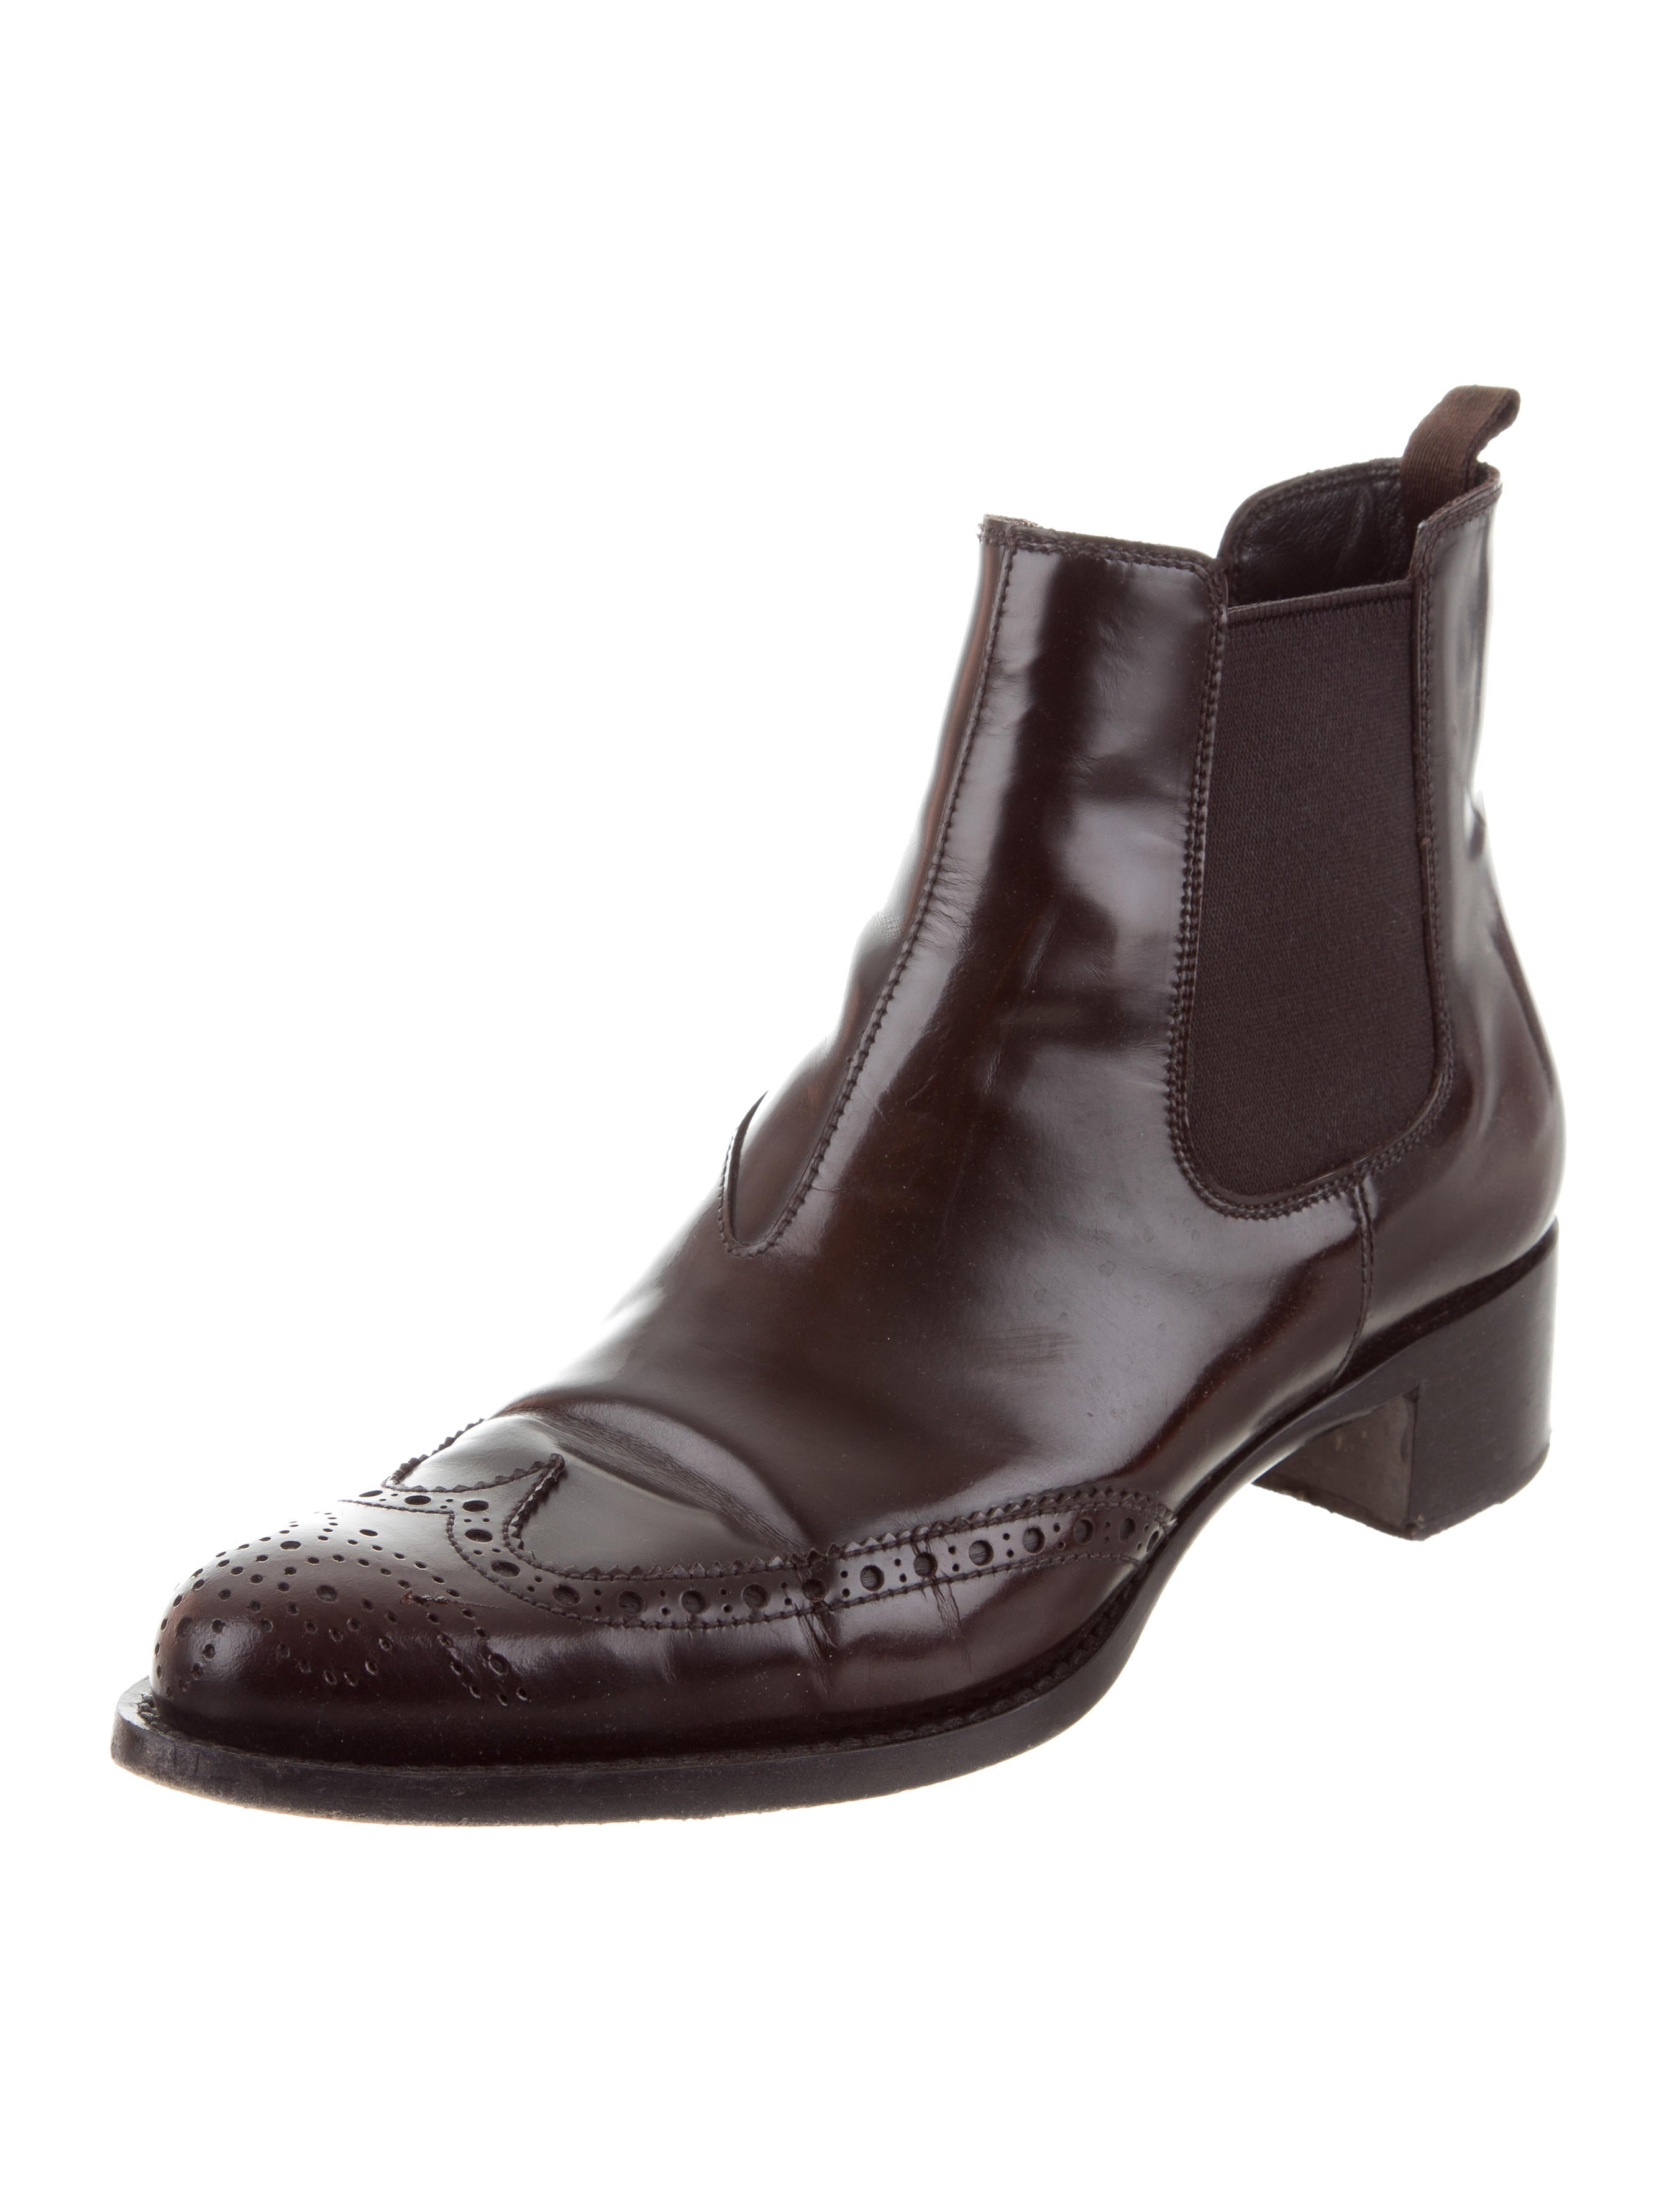 Miu Miu Brogue Leather Ankle Boots fashion Style for sale outlet 100% guaranteed best prices cheap online Y3htWq